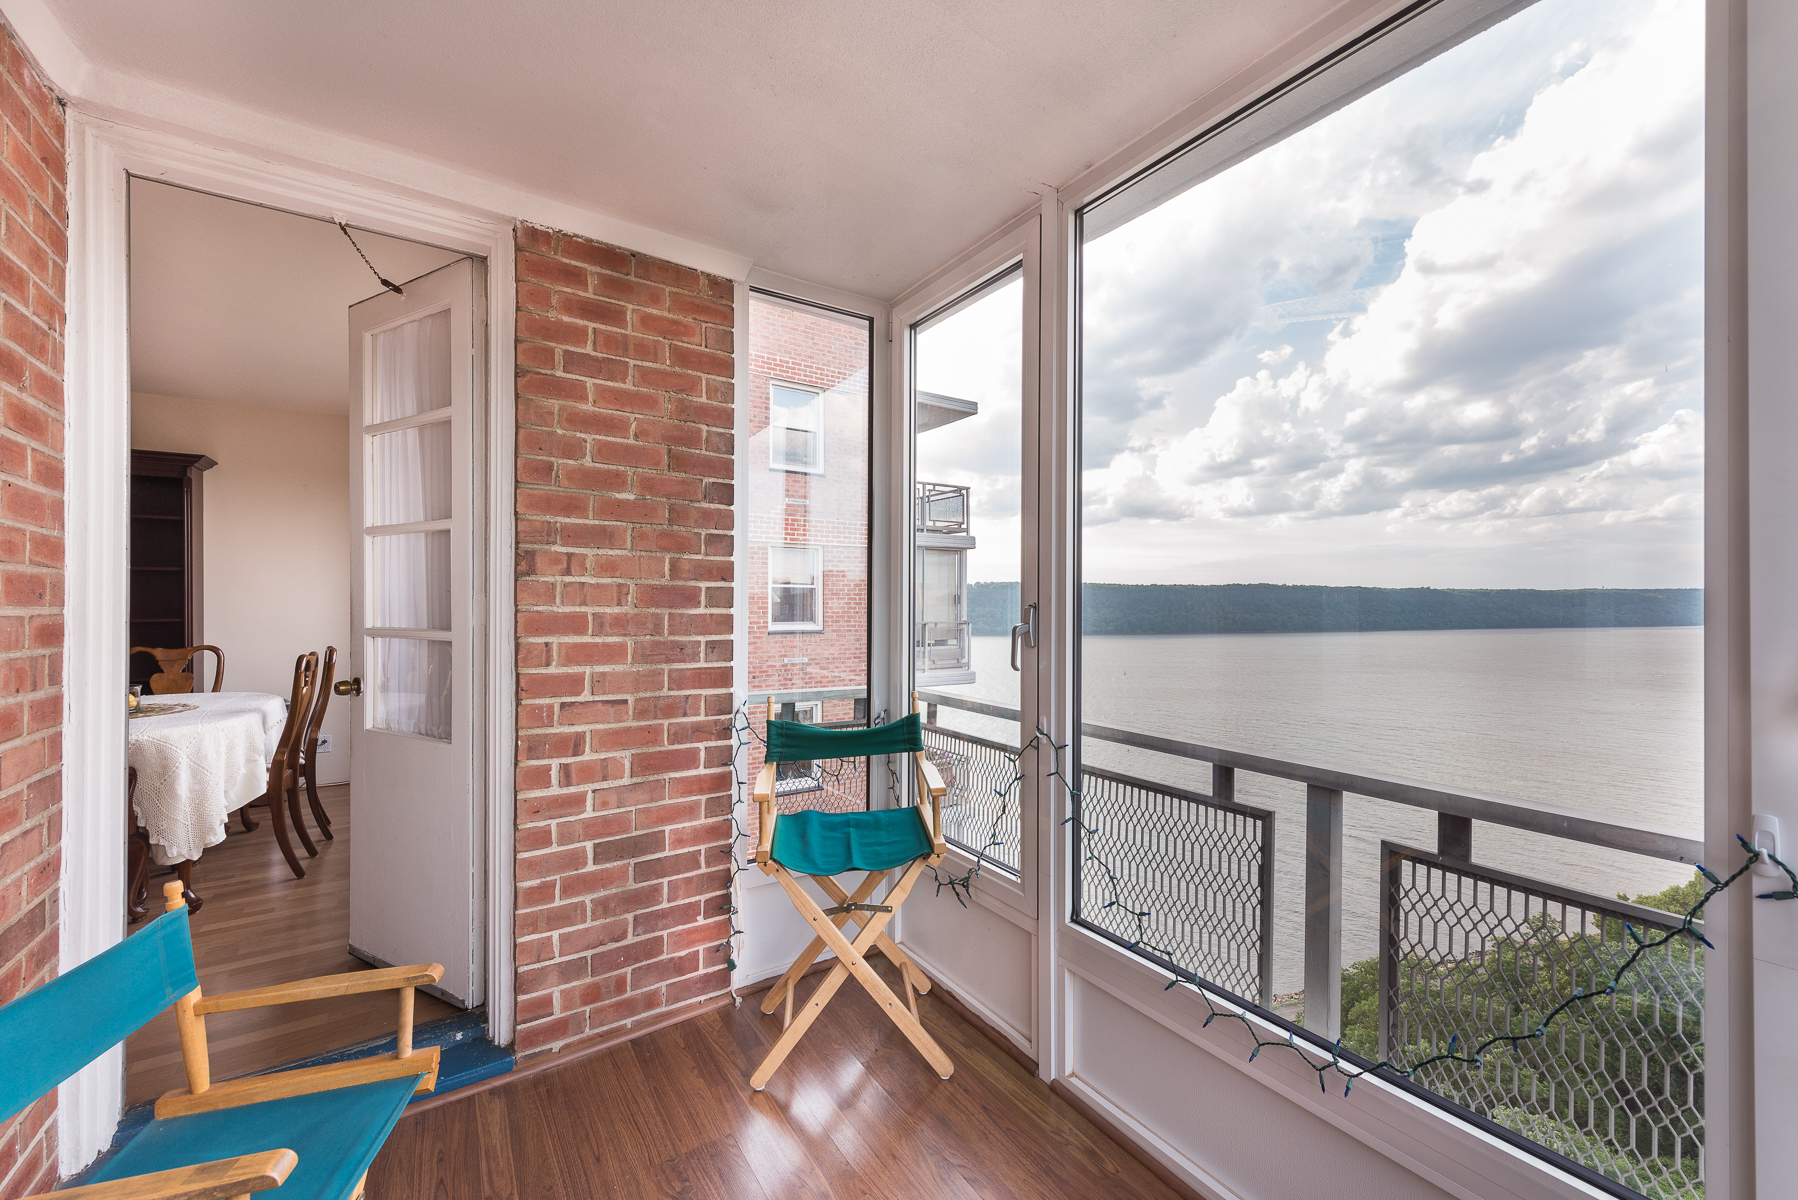 Property For Sale at New to Market - River Views 1 BR with Terrace